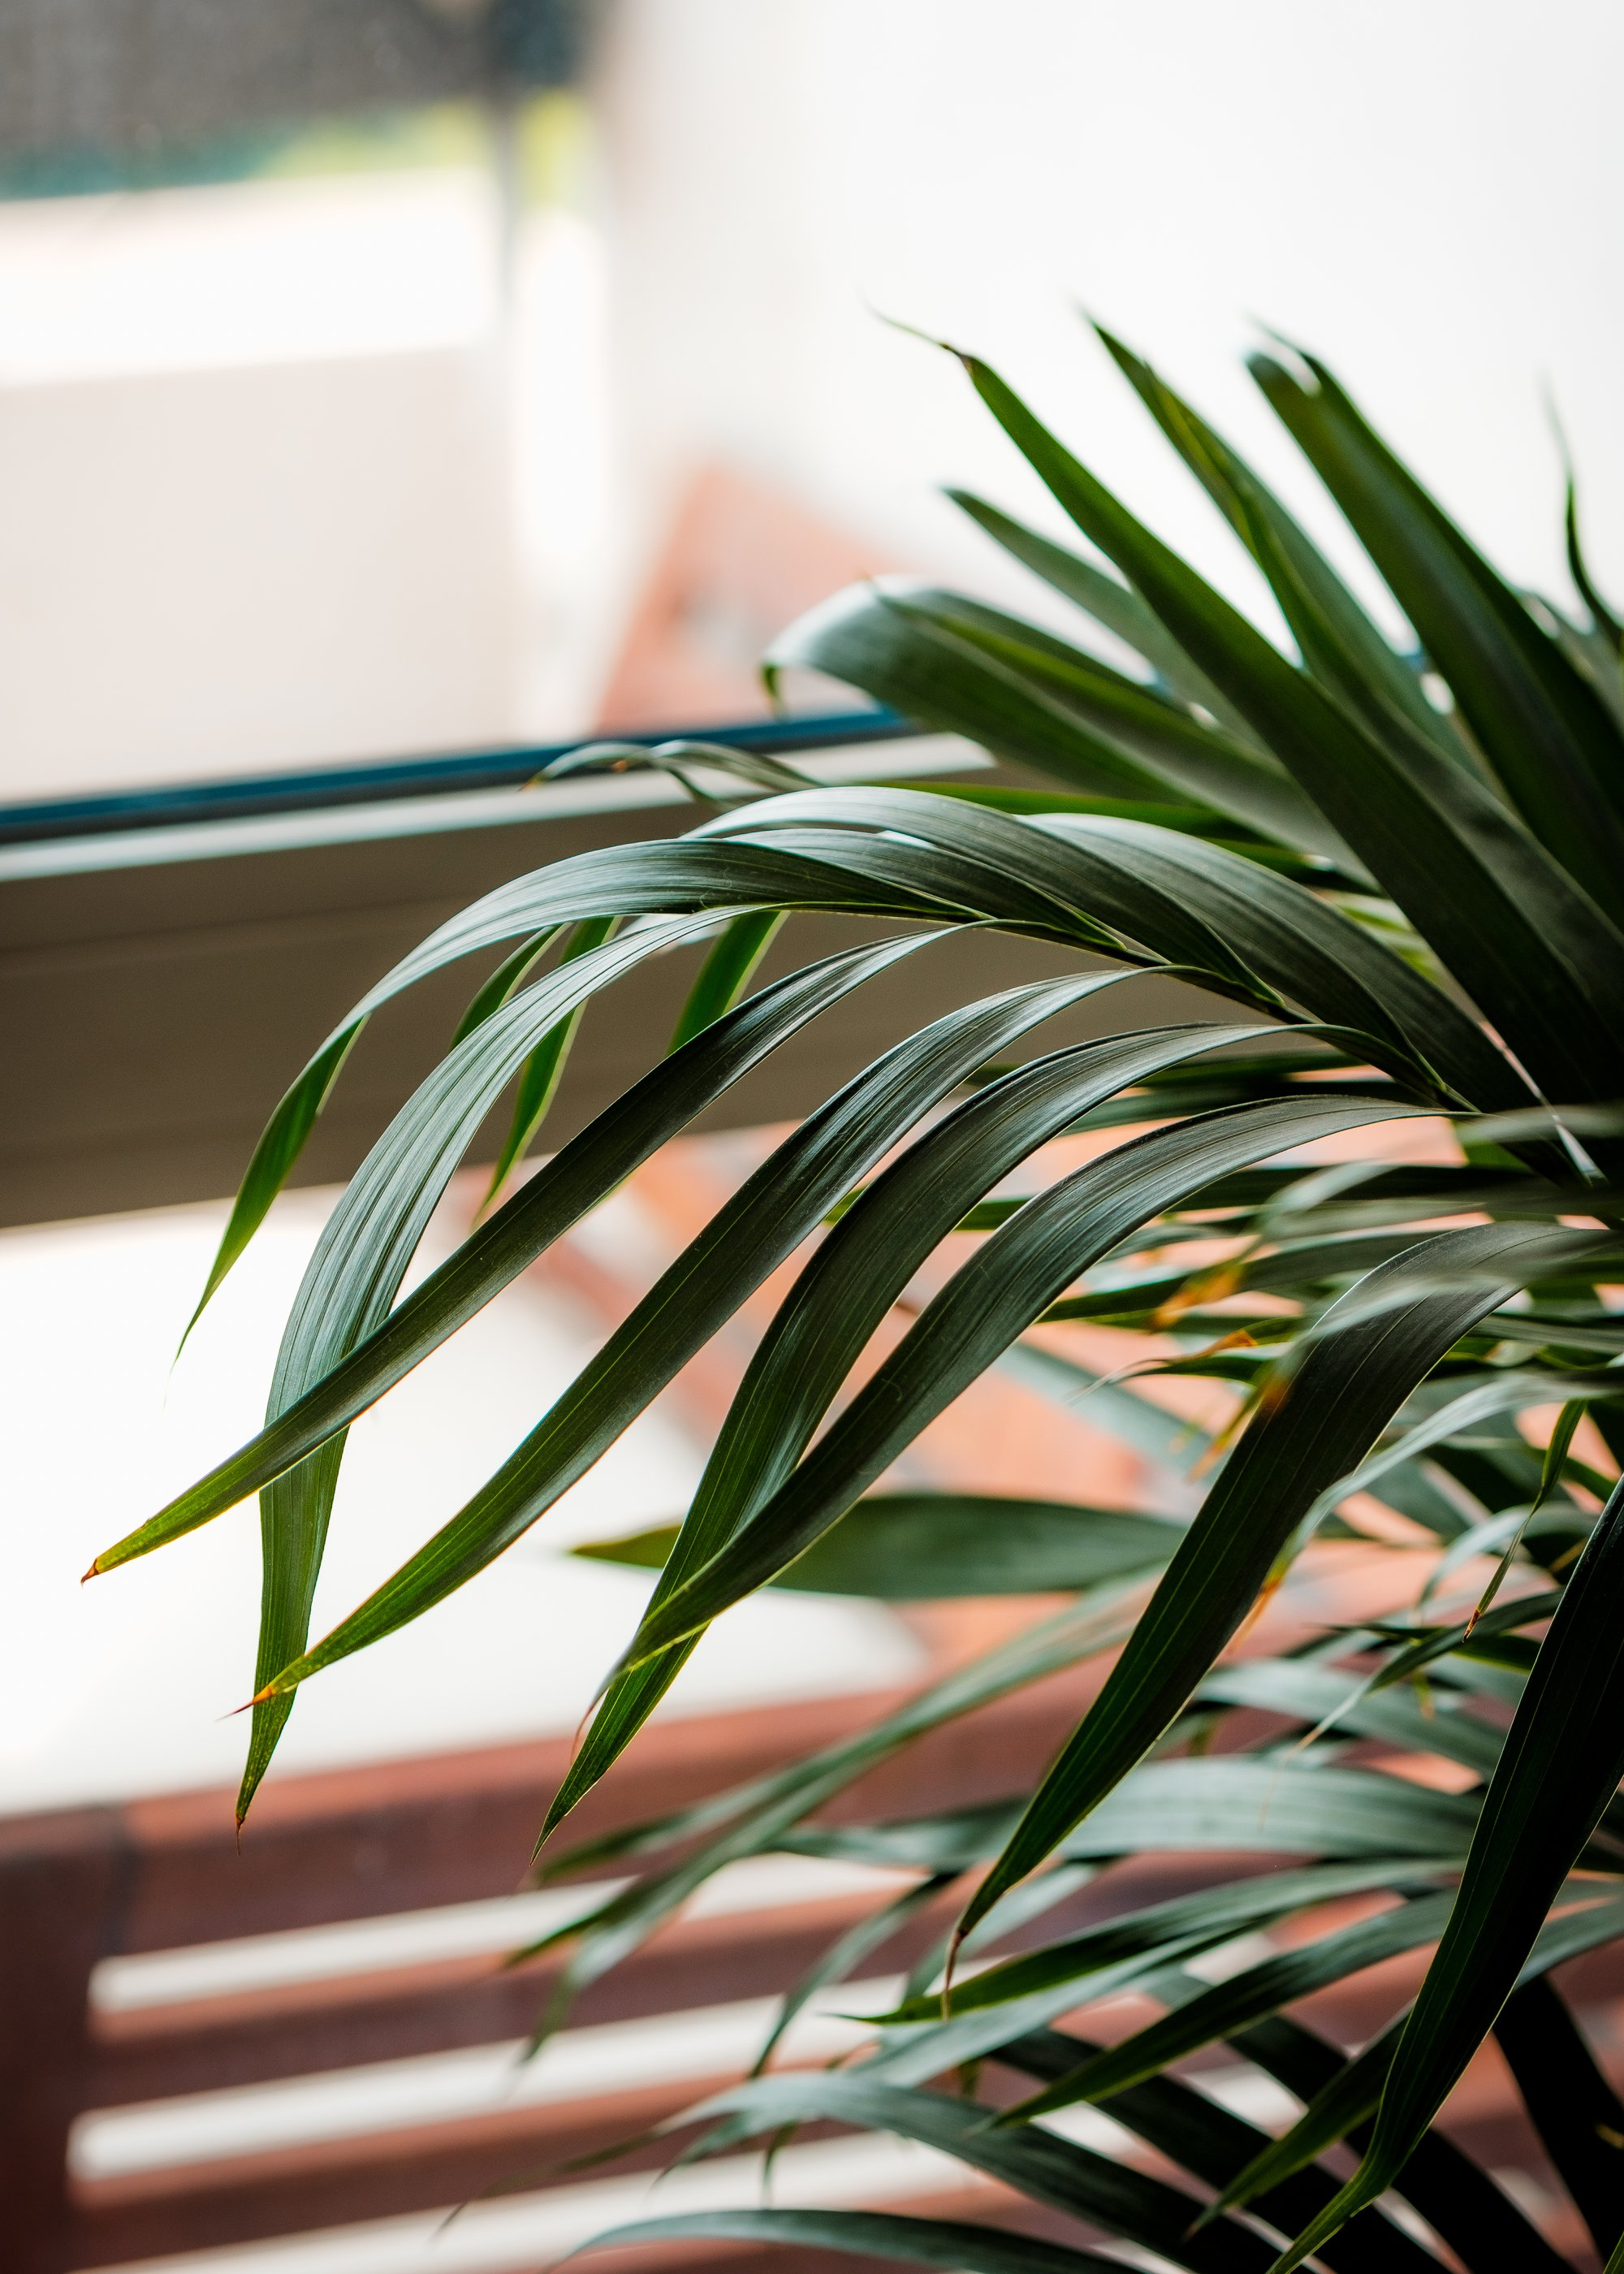 a house plant and their dark green leaves soaking in the light 一种室内植物和深绿色的叶子在光线中浸泡。